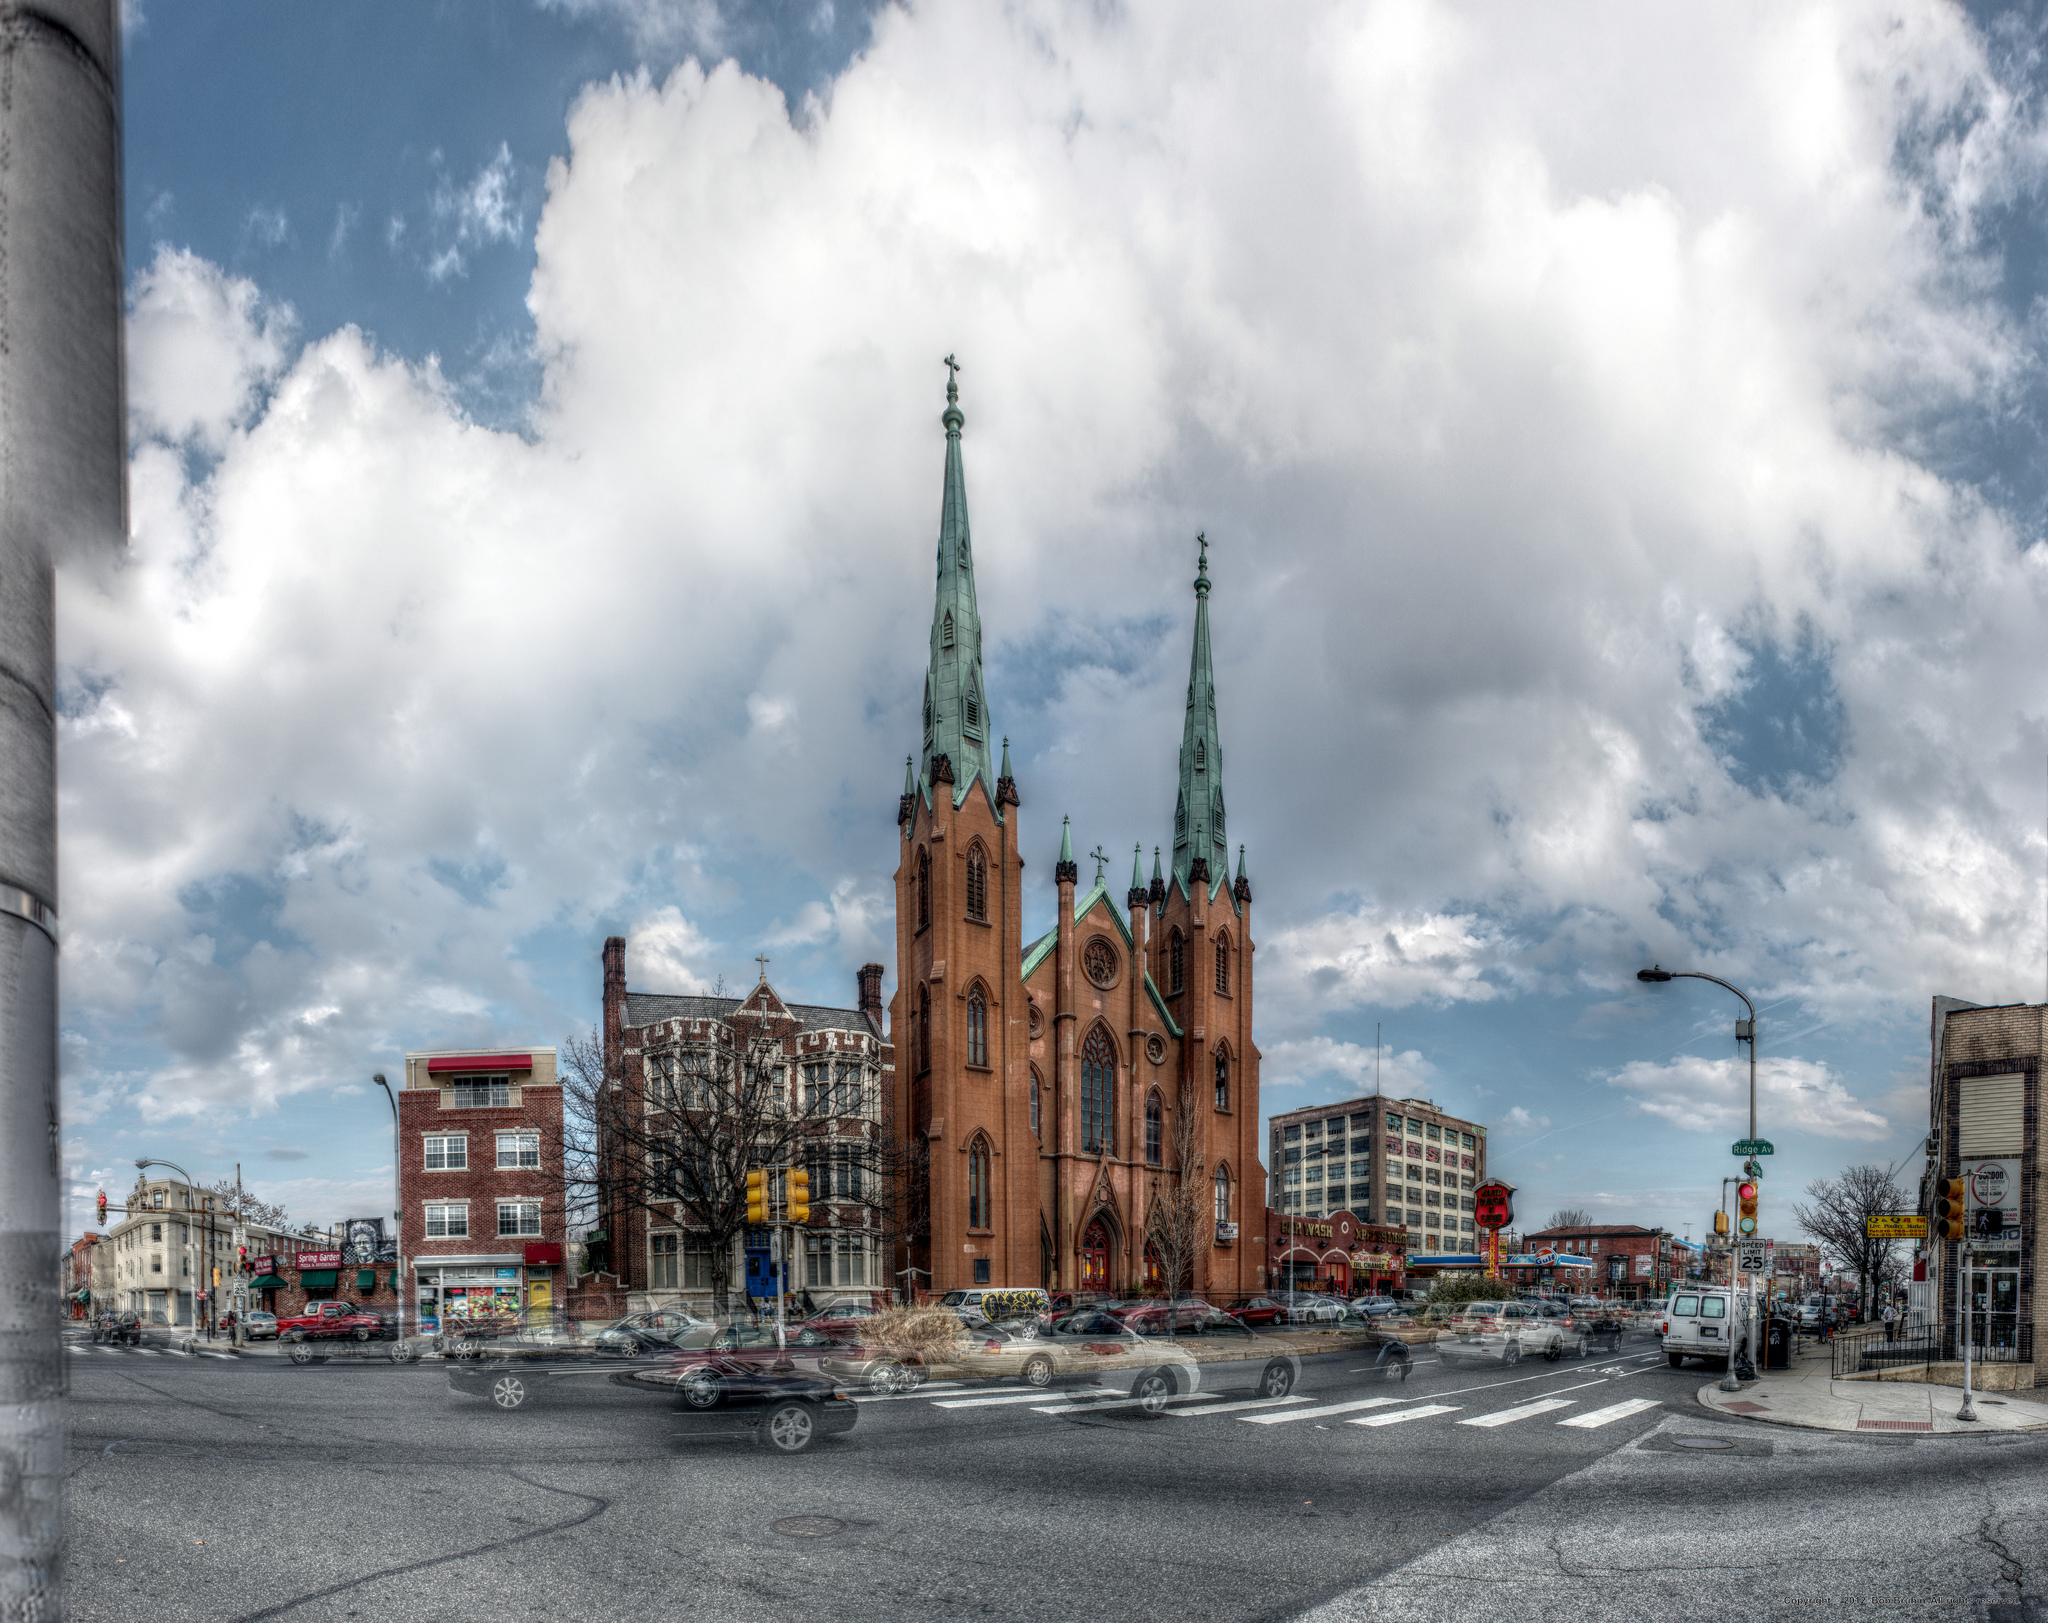 Panorama 2066_blended_fused_pregamma_1_mantiuk06_contrast_mapping_0.1_saturation_factor_0.8_detail_factor_1 small